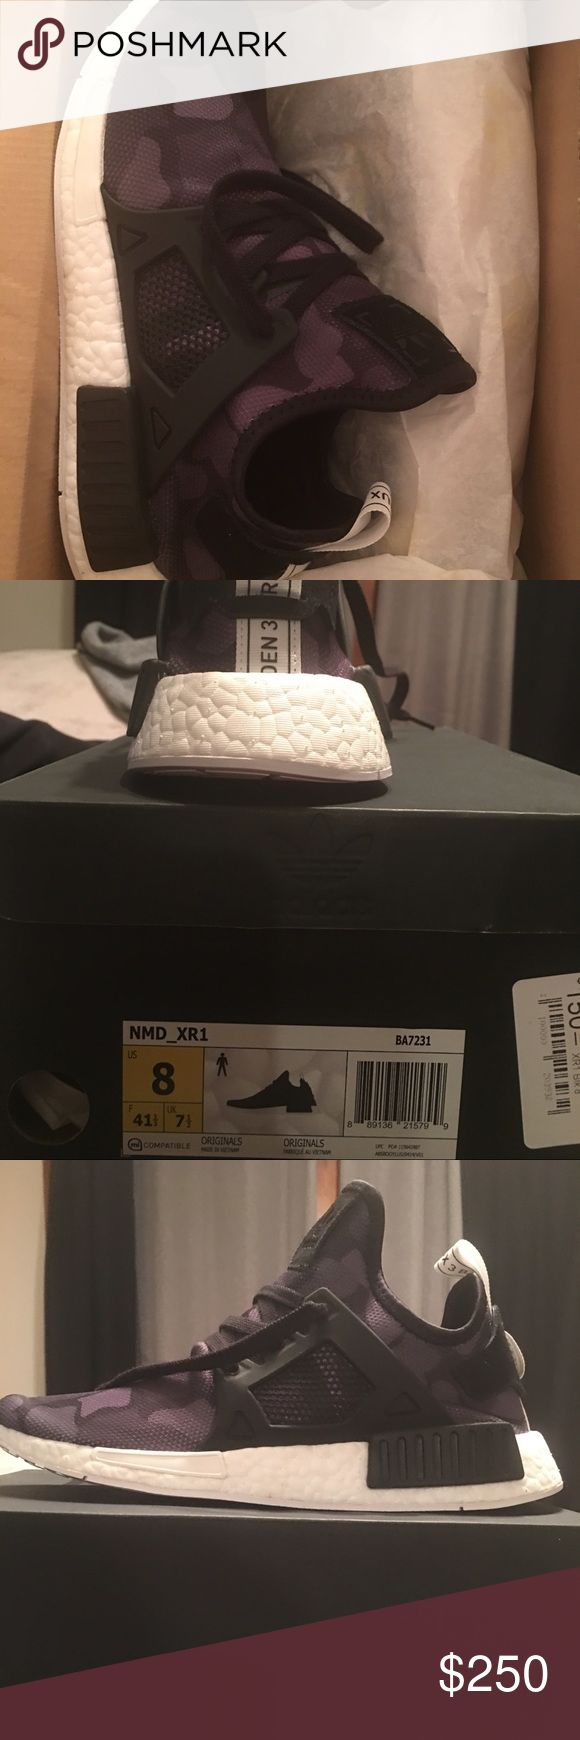 Adidas NMB Camo. Men's 8 Never worn. New with the box. Men's 8 fits a women 9.5/10 Adidas Shoes Athletic Shoes